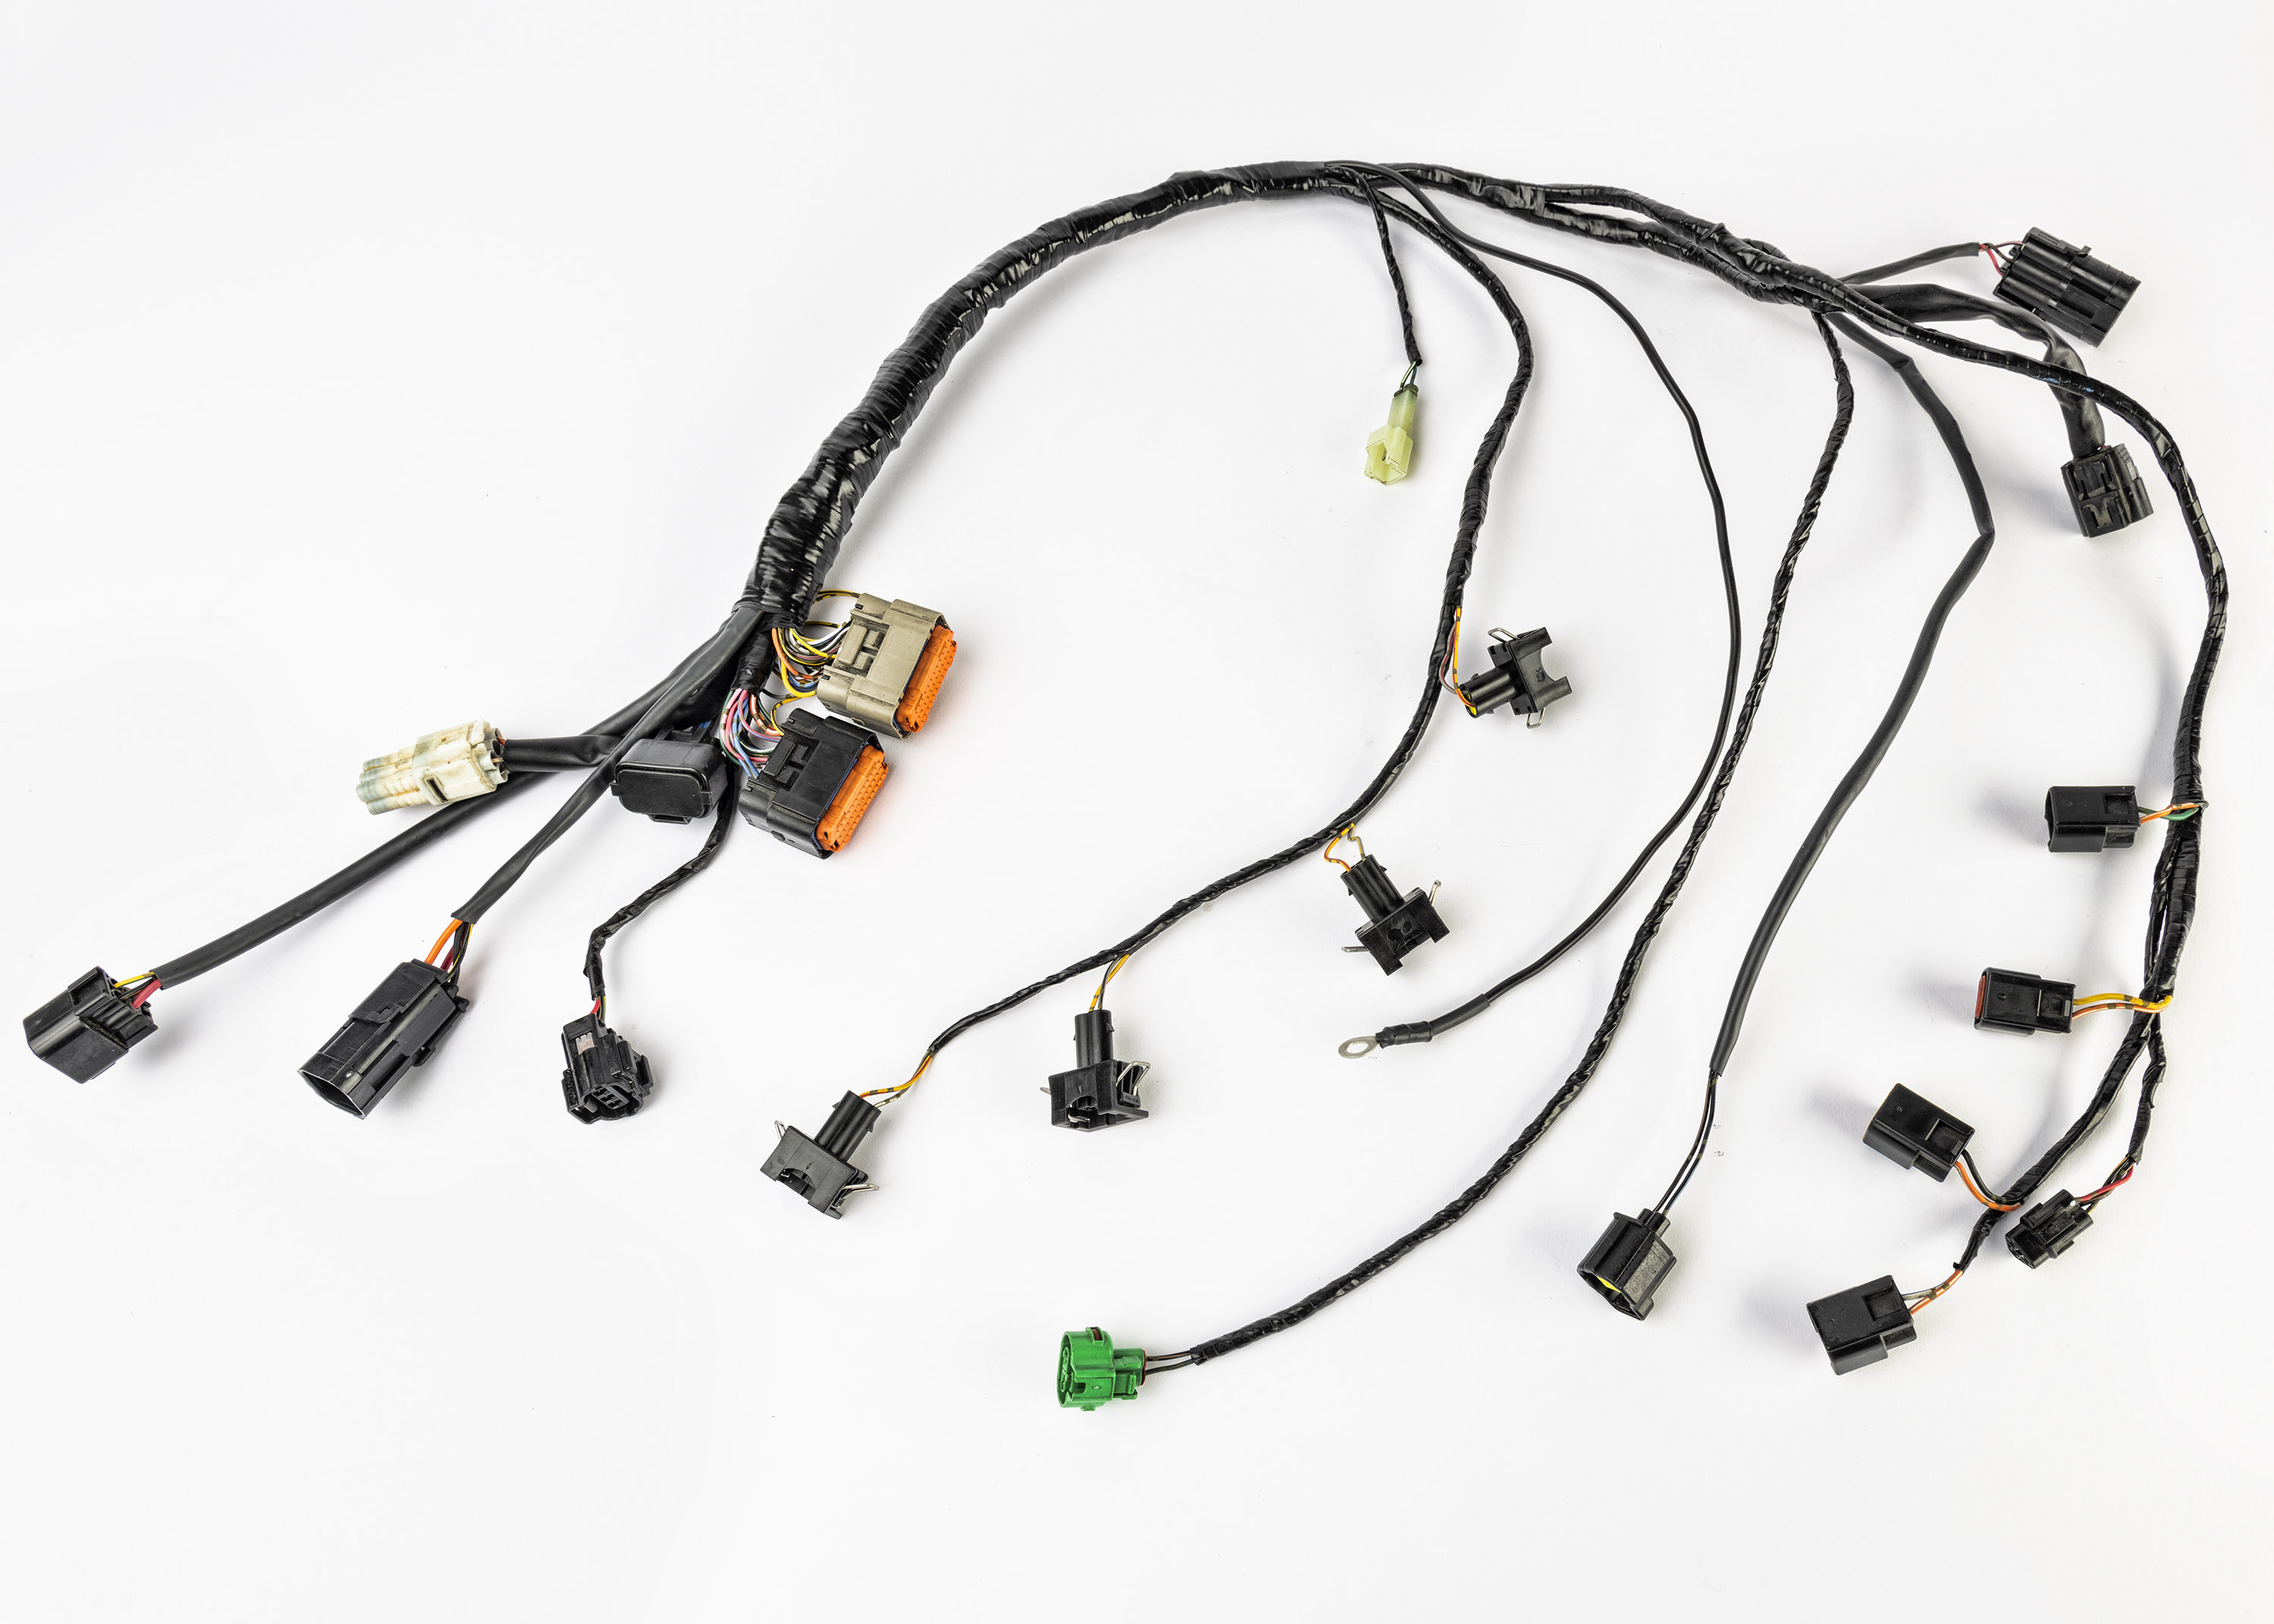 Yamaha 750 Wire Harness